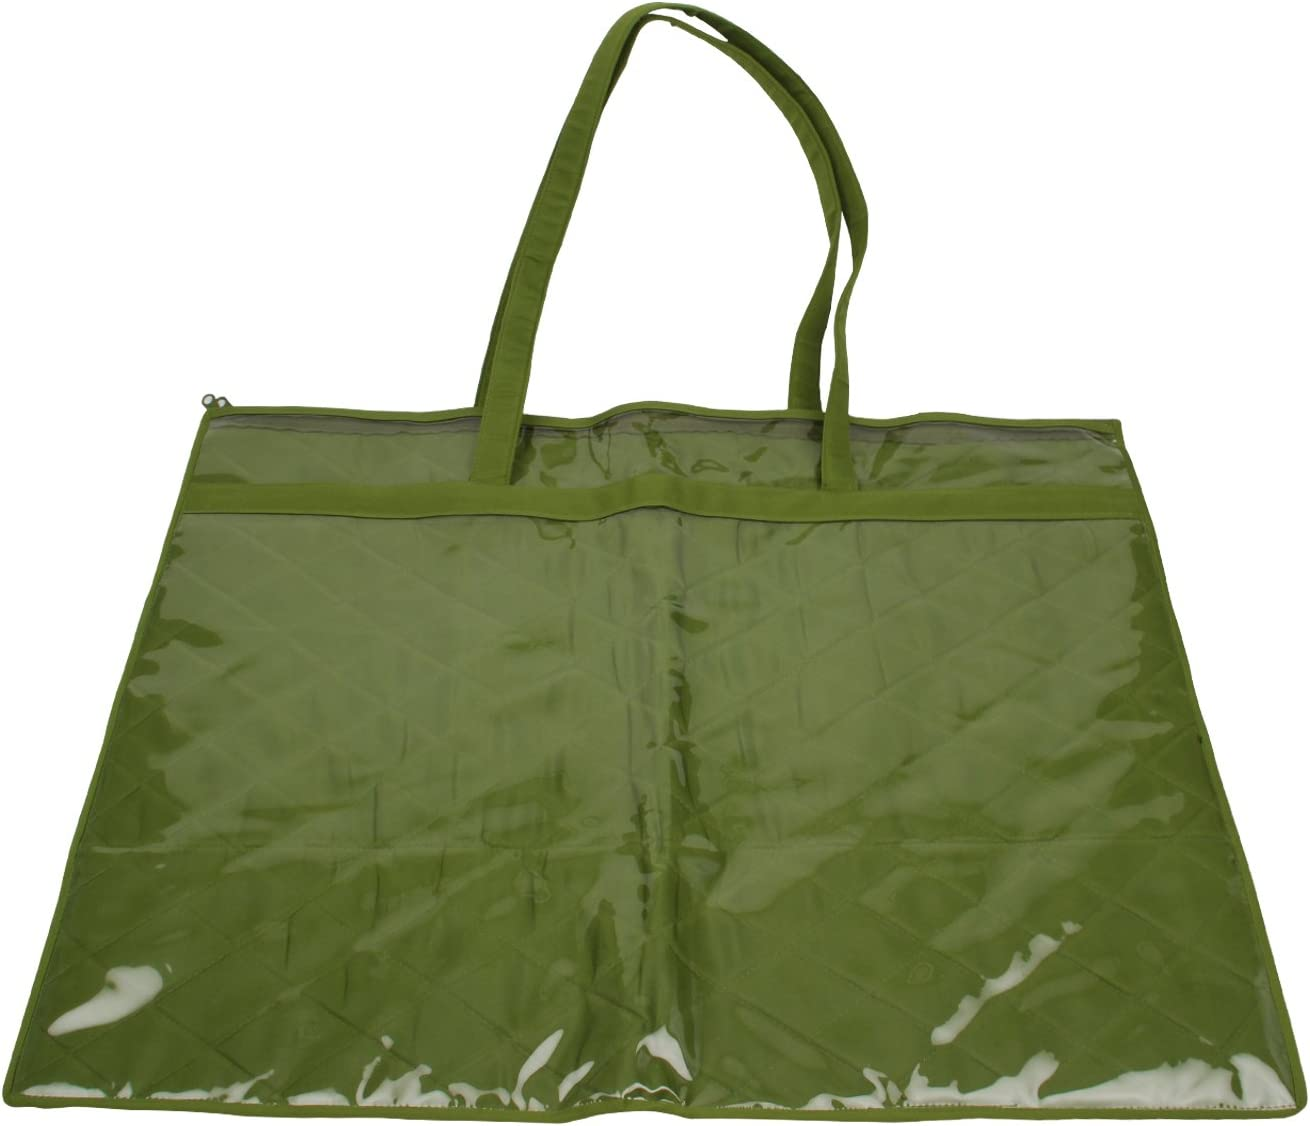 Yazzii CA 570 G Mat Carrier Green Large